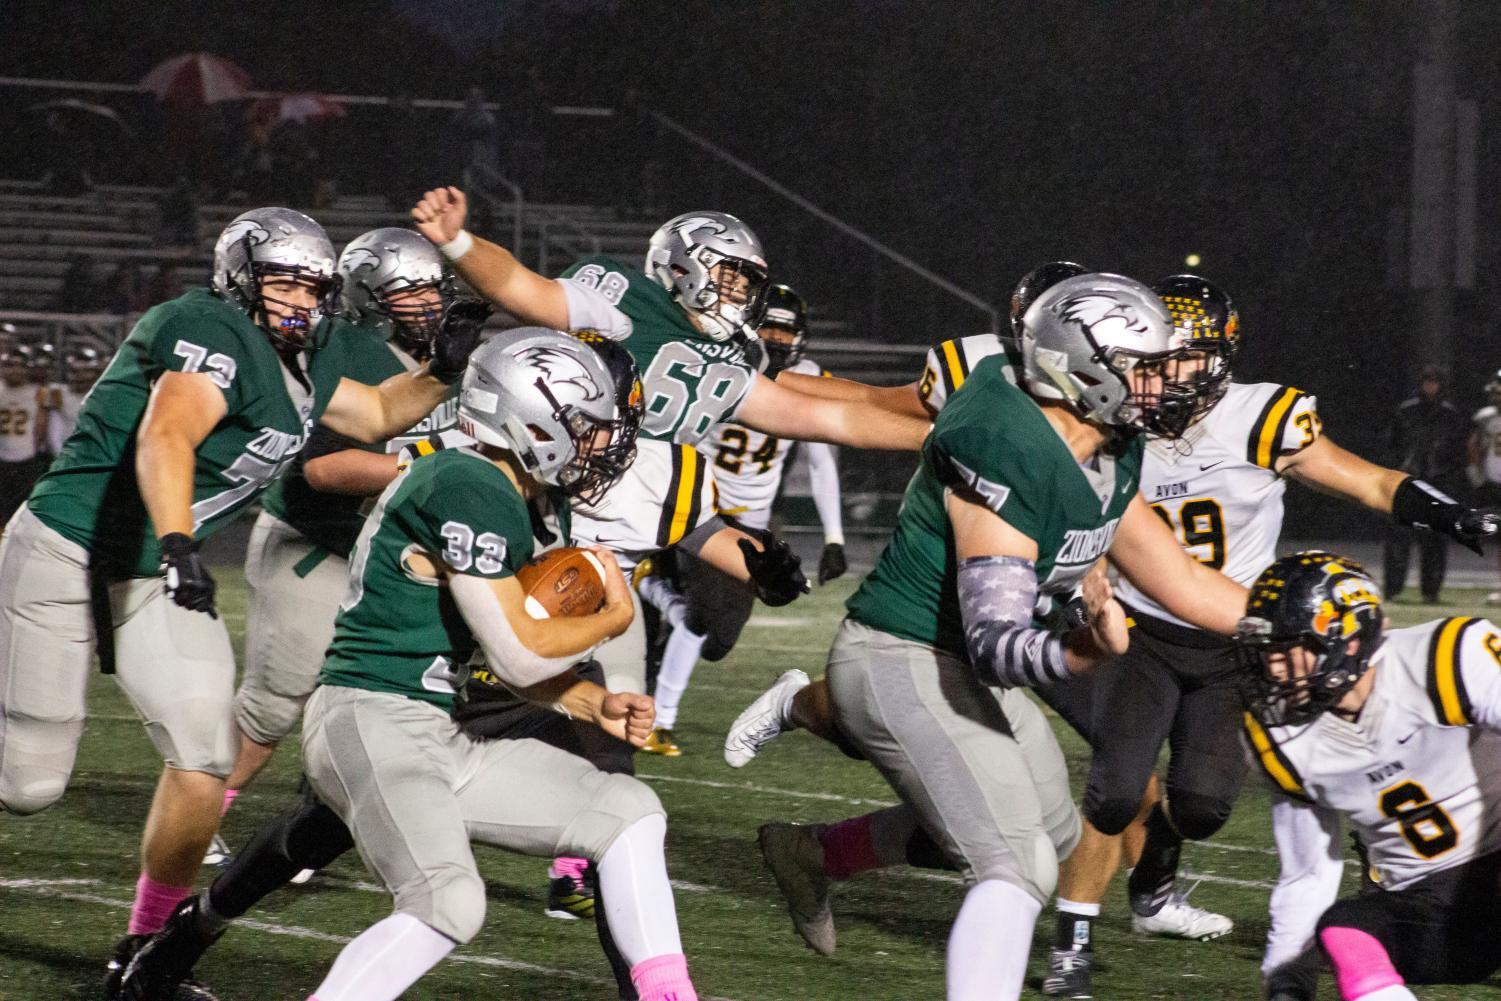 Gus Hartwig, senior, blocks multiple defenders during a play where Sophomore Colin Price runs the ball down the field.